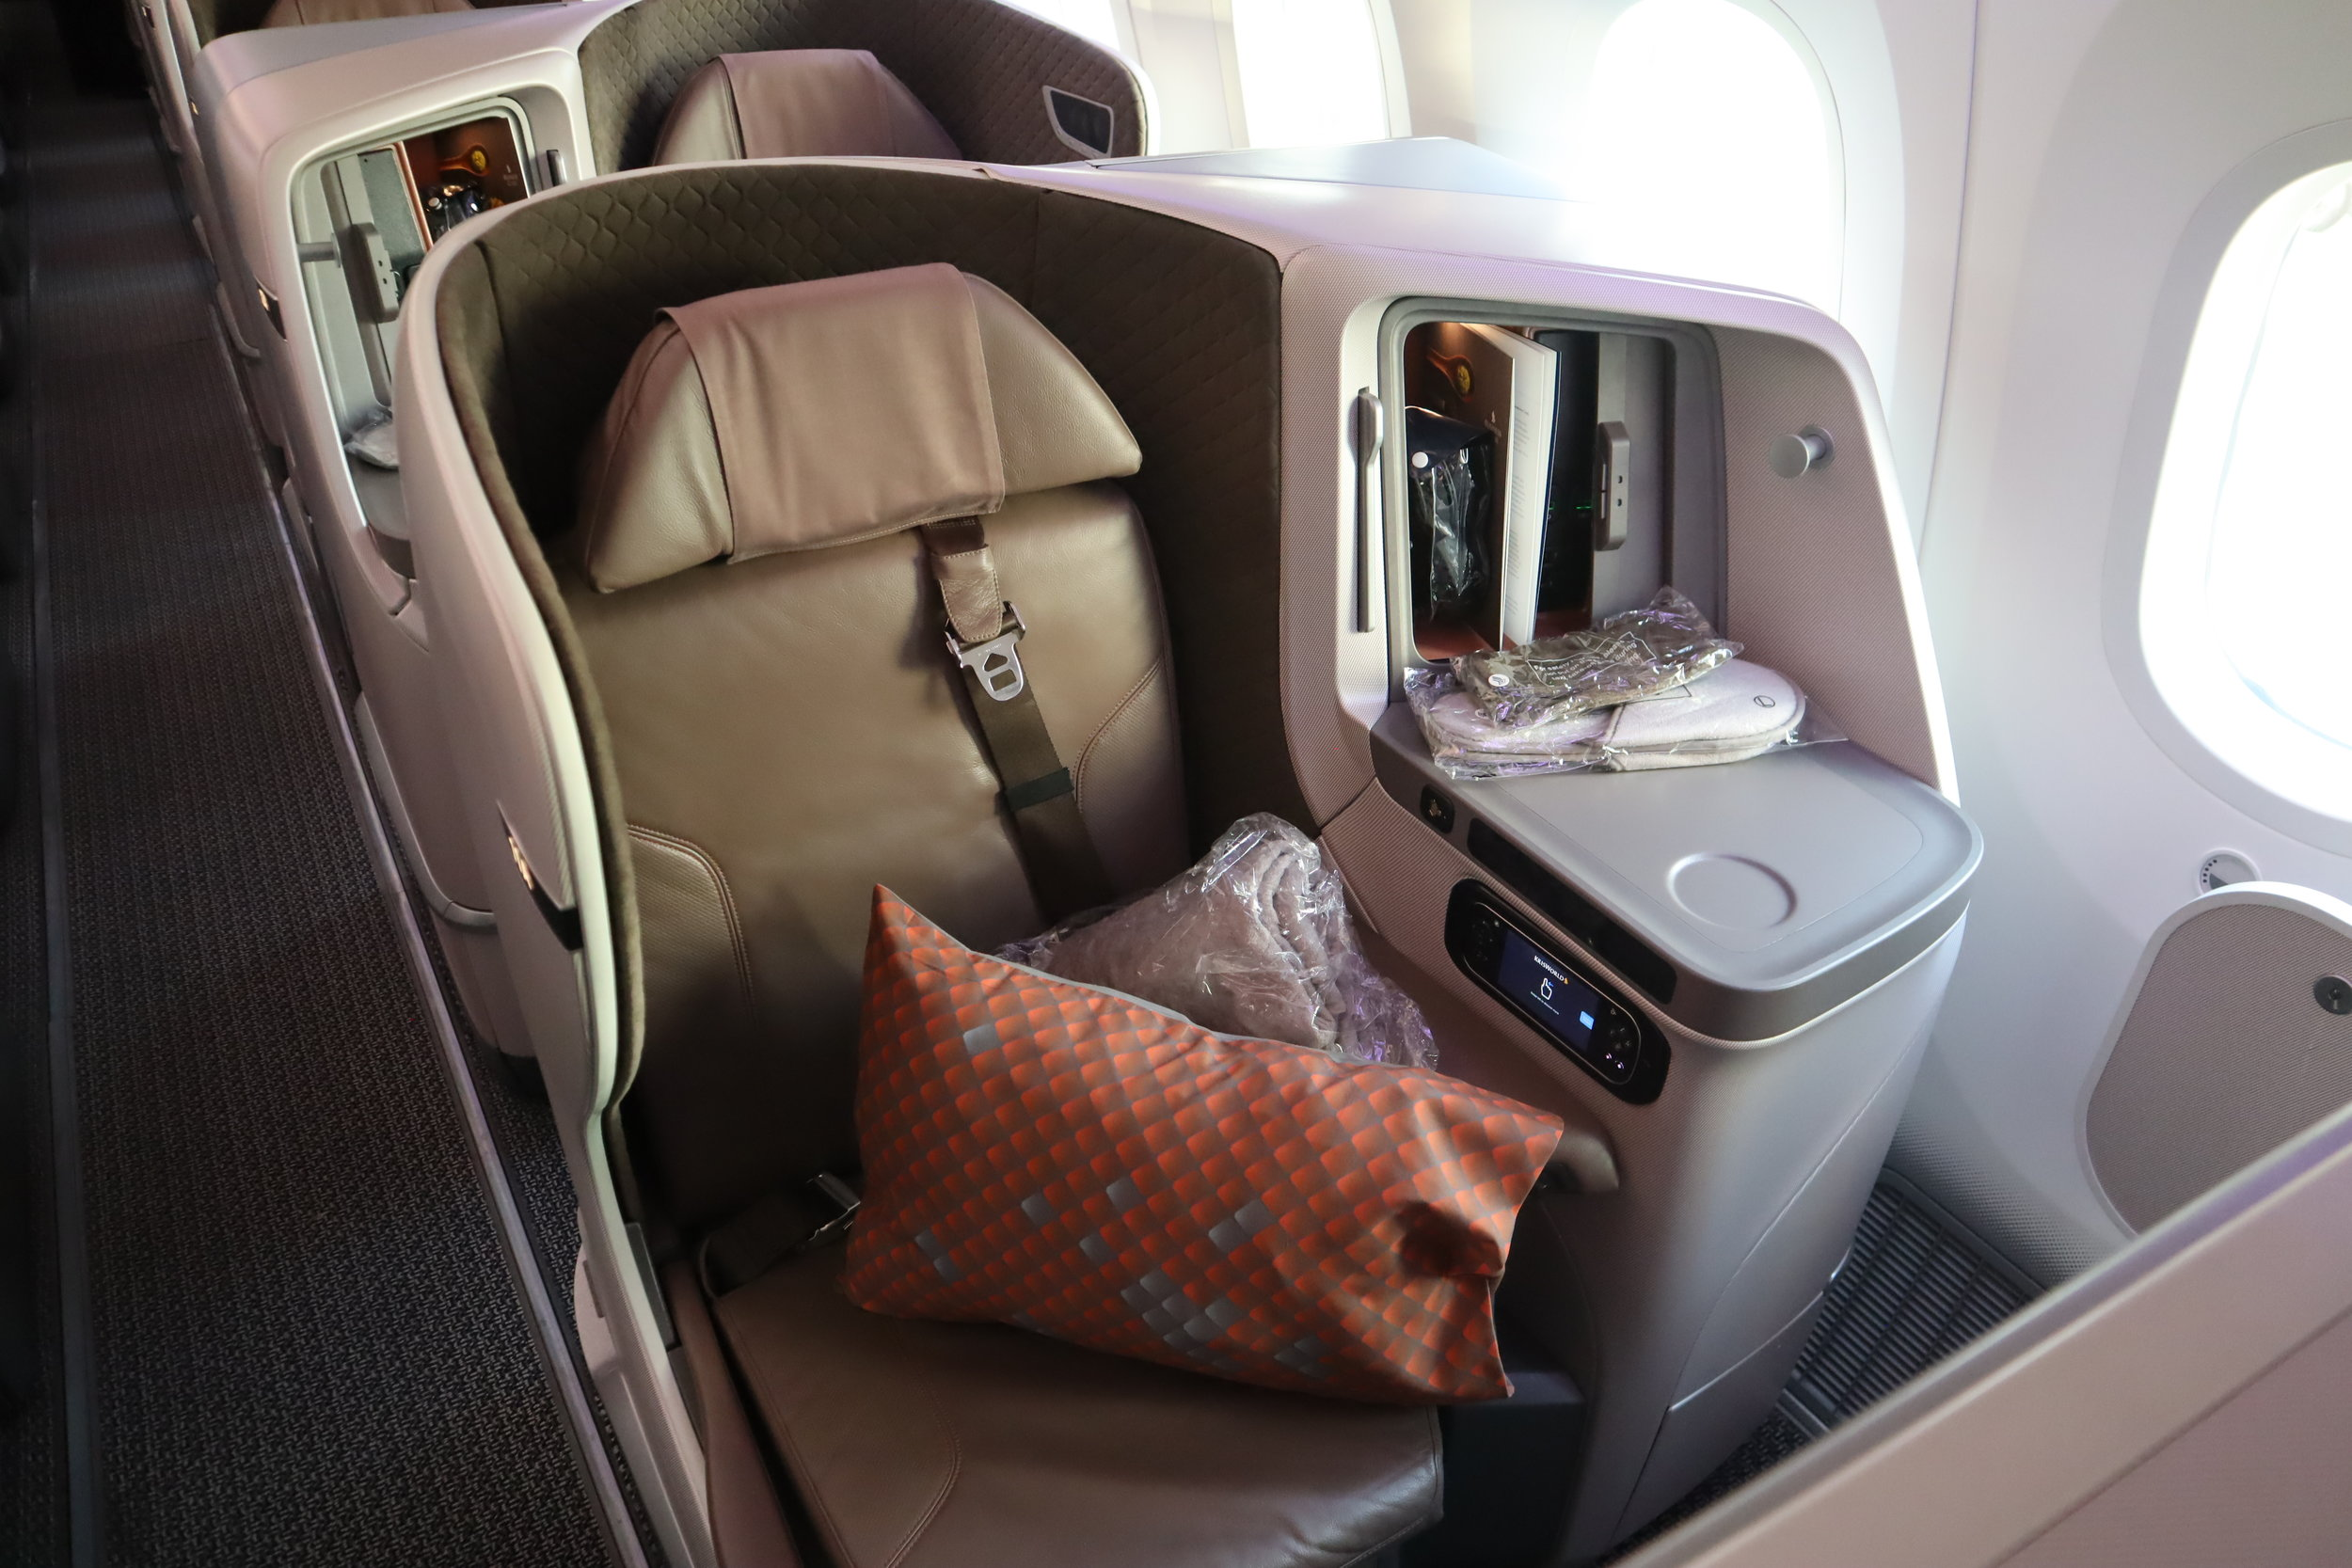 Fly Singapore Airlines business class on an ANA RTW award!